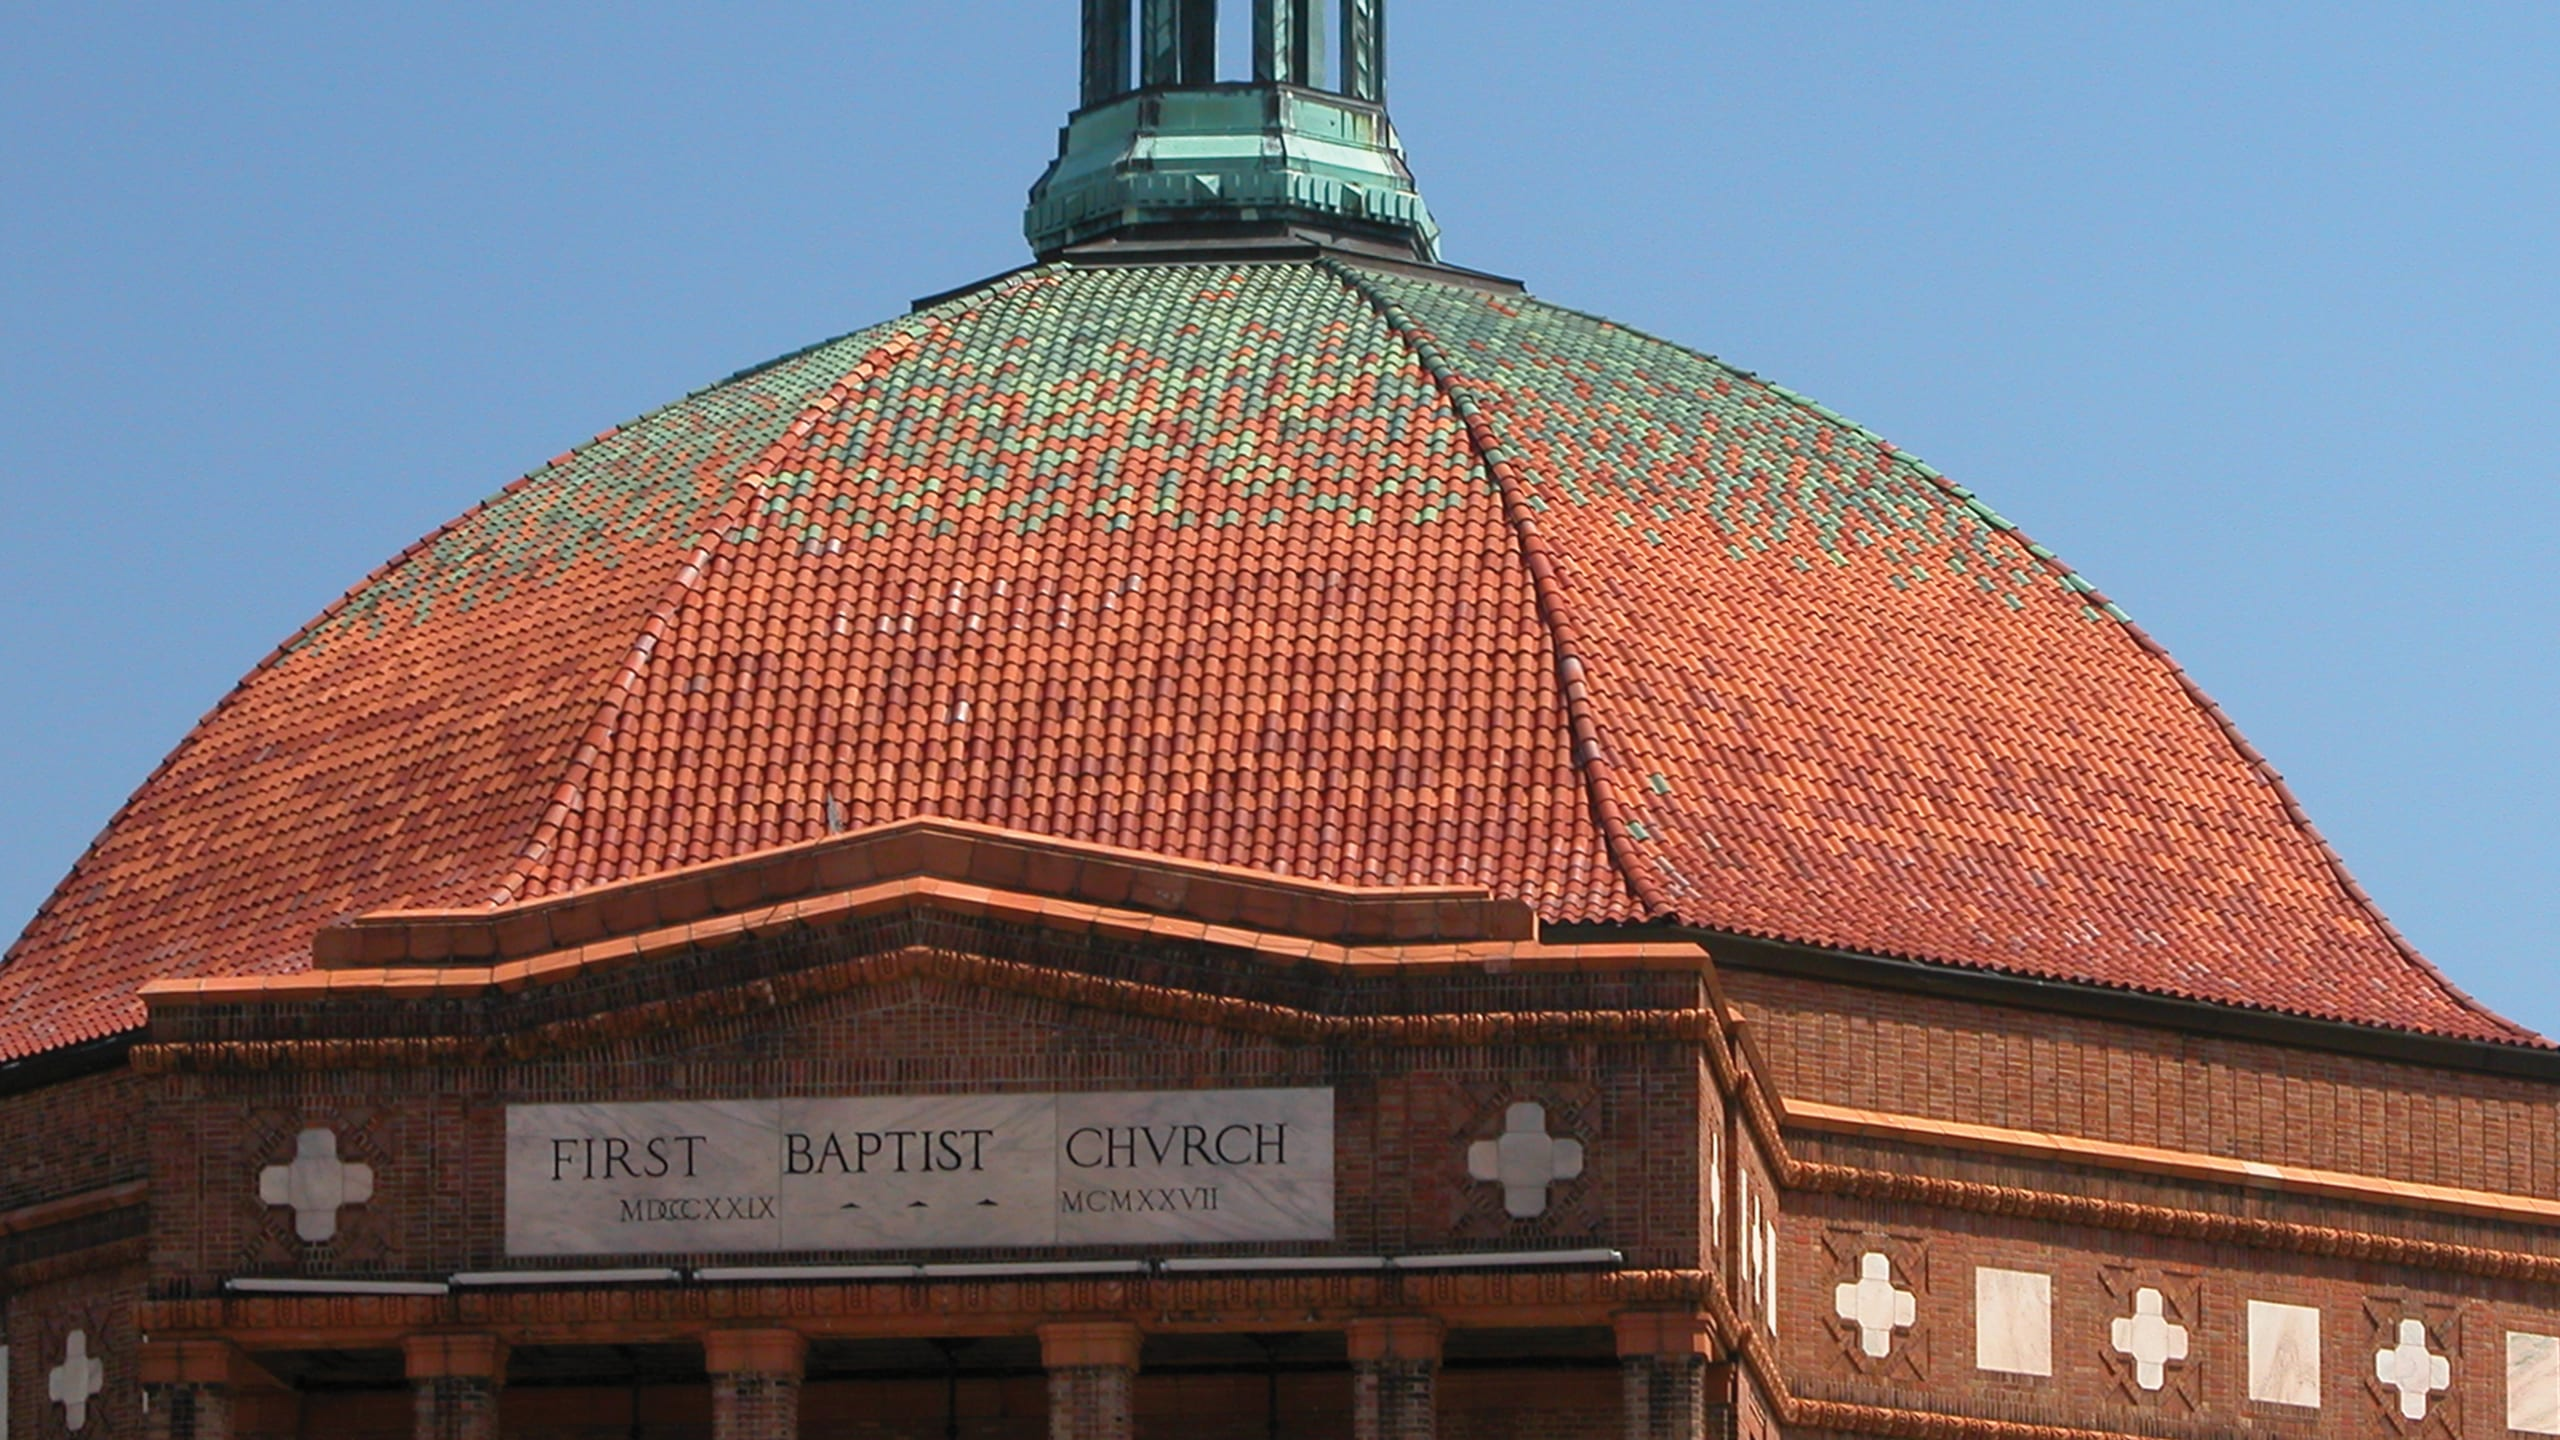 First Baptist Church Ludowici Roof Tile